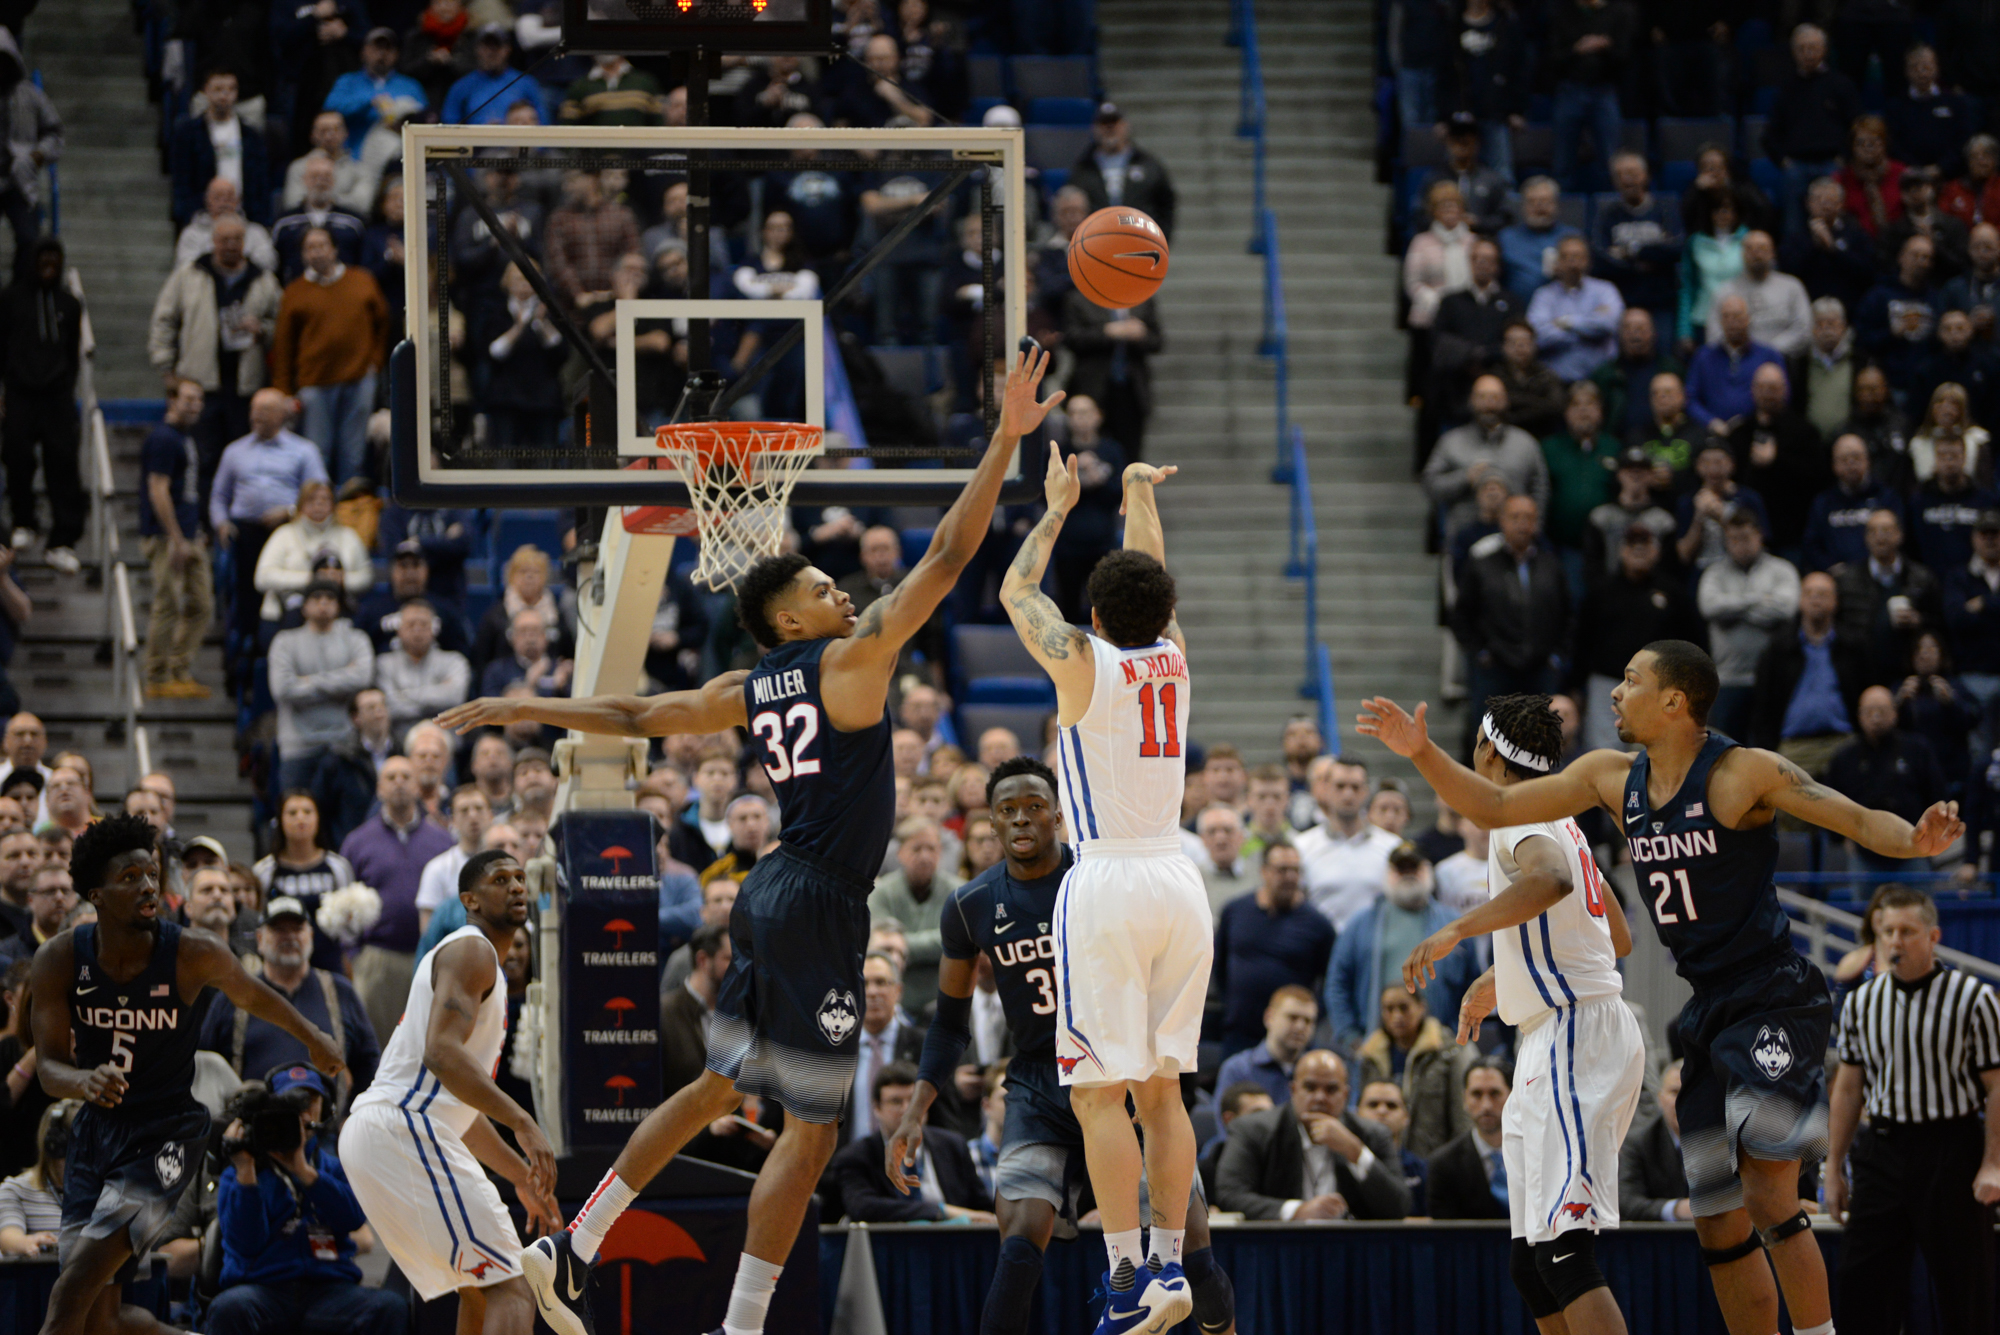 UConn defeats SMU 68-62 at the XL Center in Hartford on Feb. 18, 2016.(Amar Batra/The Daily Campus)